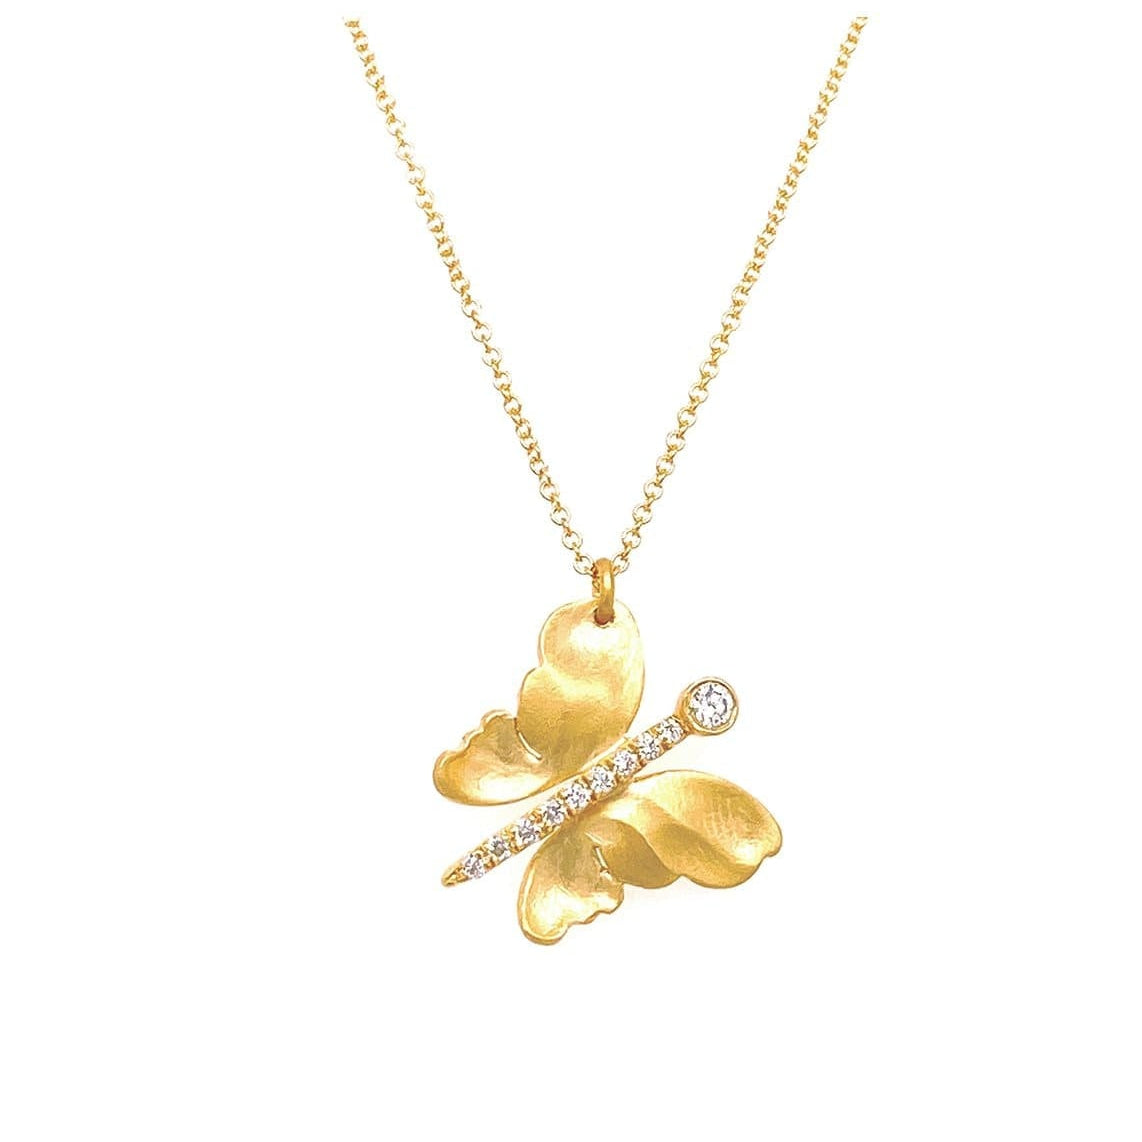 Marika Diamond & 14k Gold Necklace - M3927-Marika-Renee Taylor Gallery